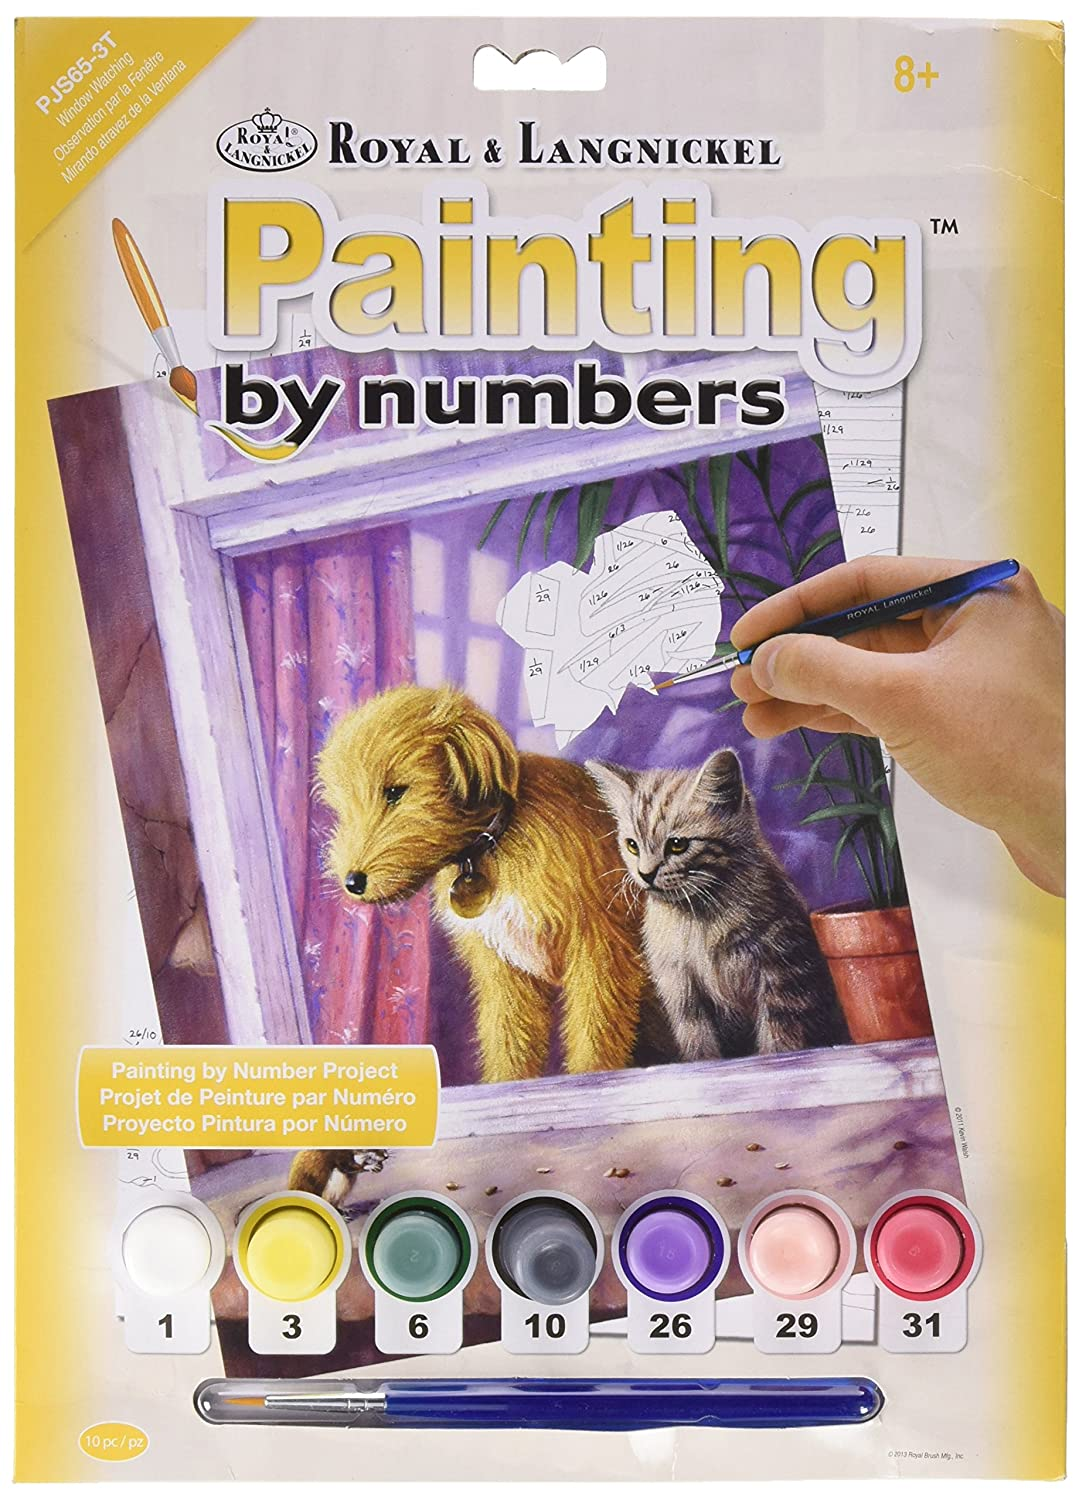 Royal & Langnickel 11 x 15 inch Window Watching Pre-Printed Paint by Number Painting Set PJS65